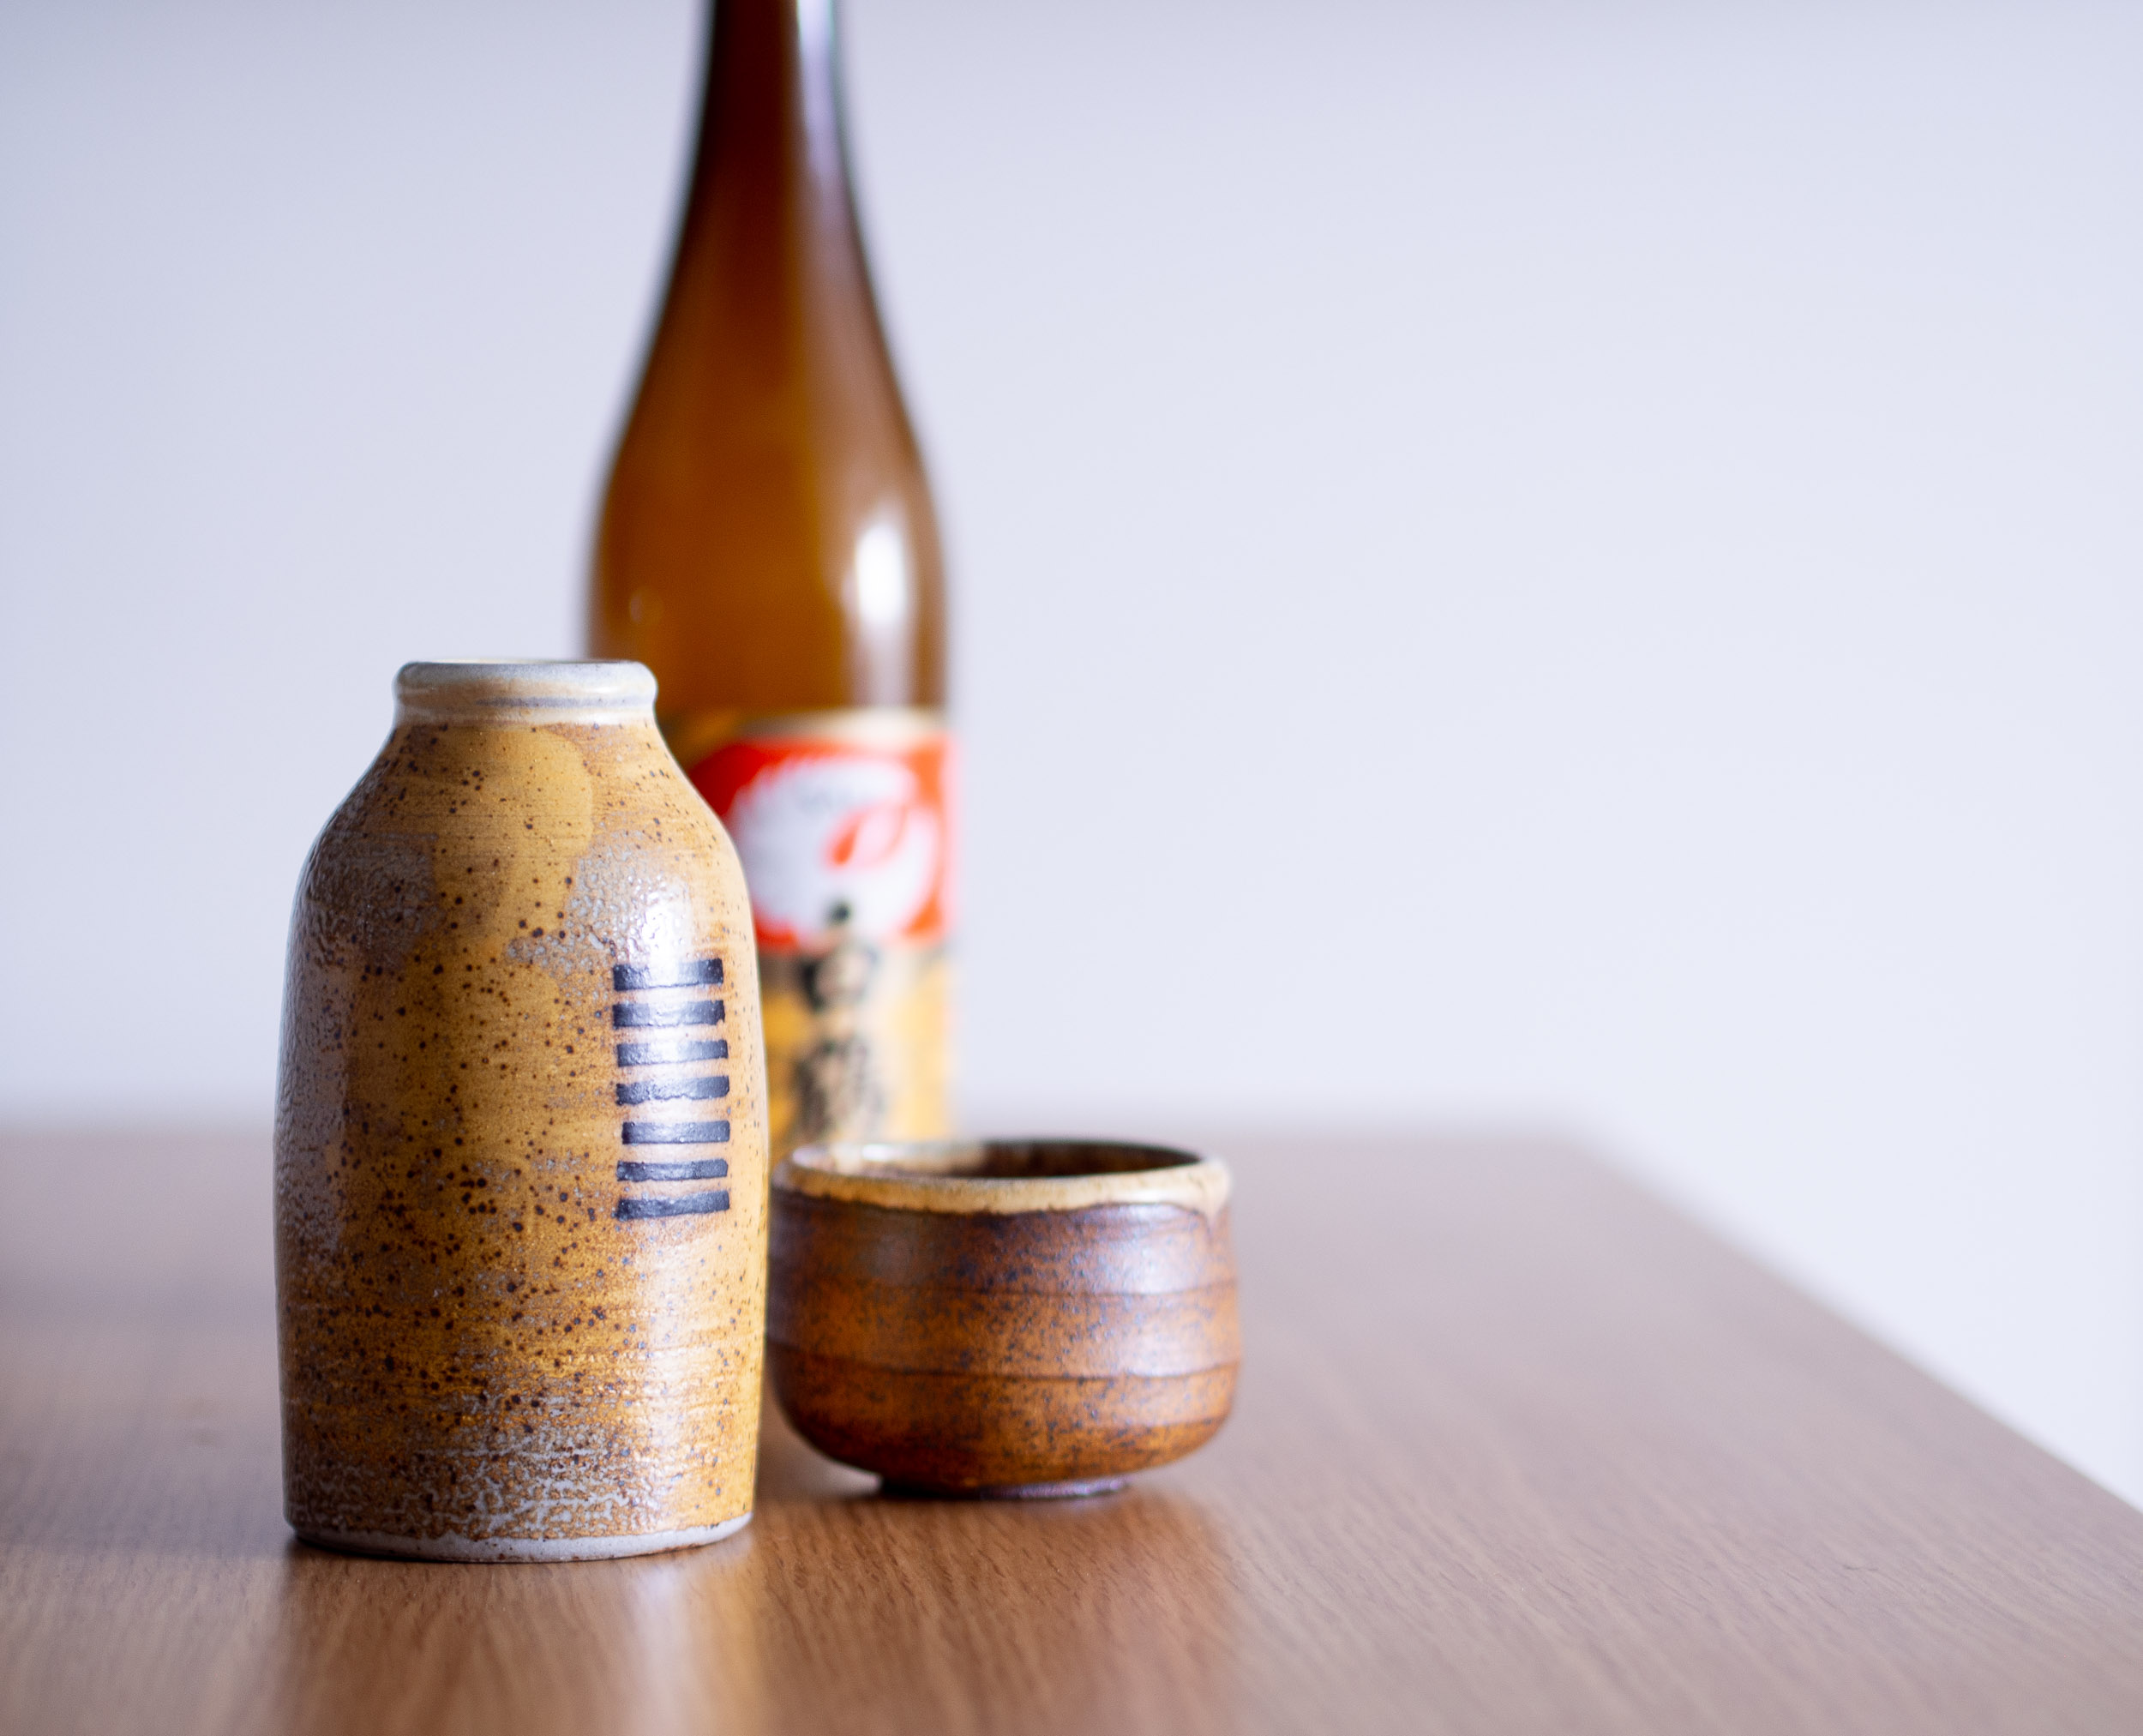 Soda-fired bottle and cup